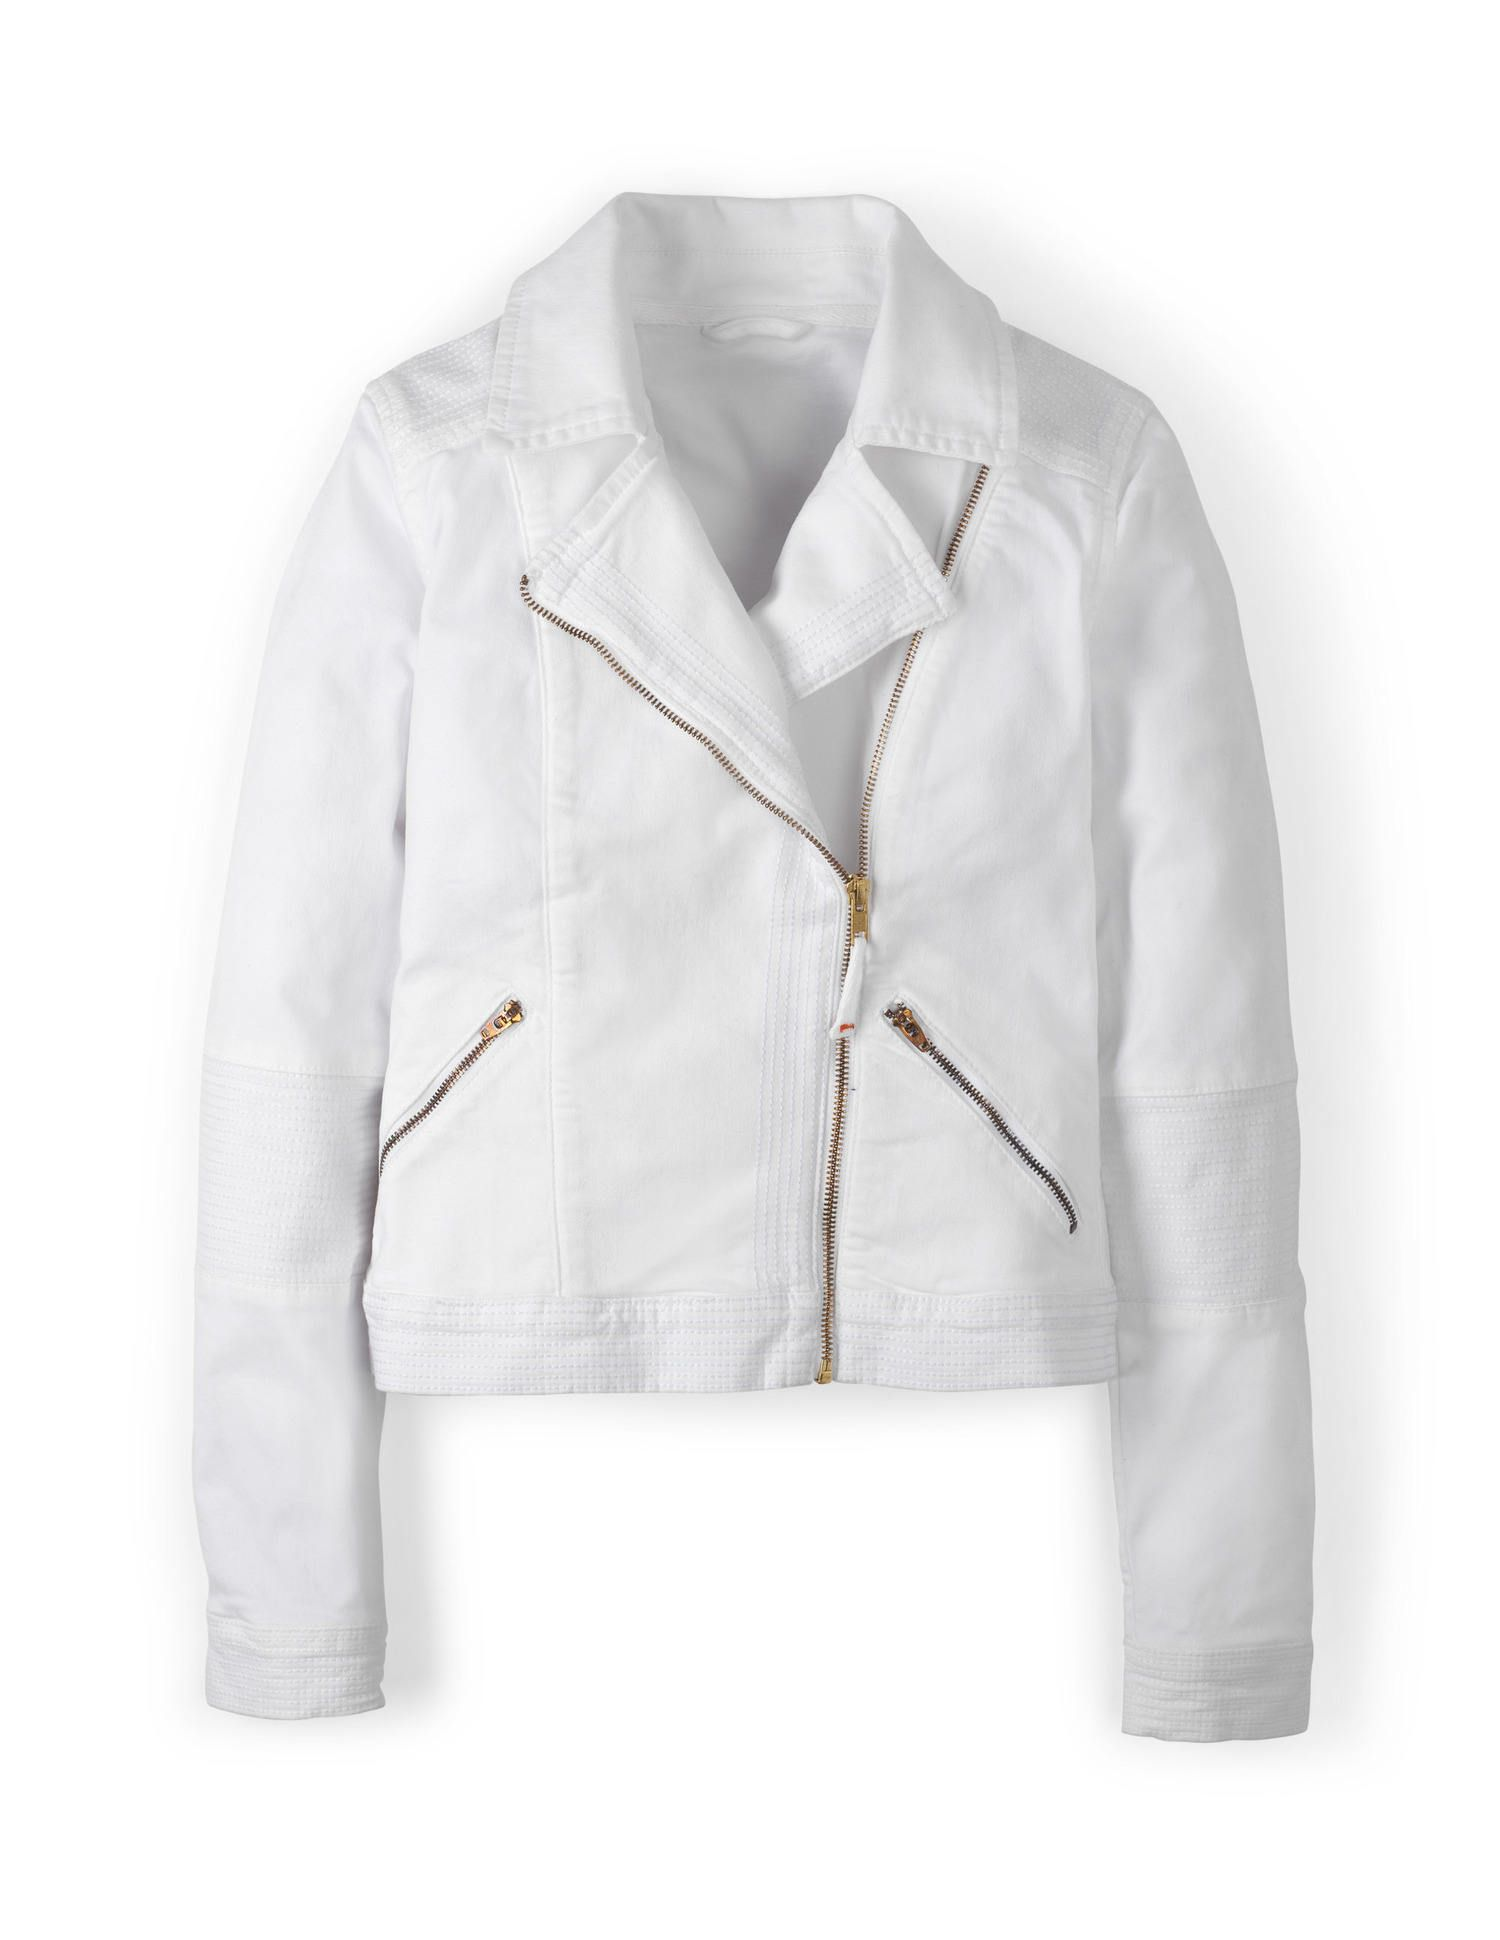 ac85b528273 All white on the night - Boden white biker jacket.